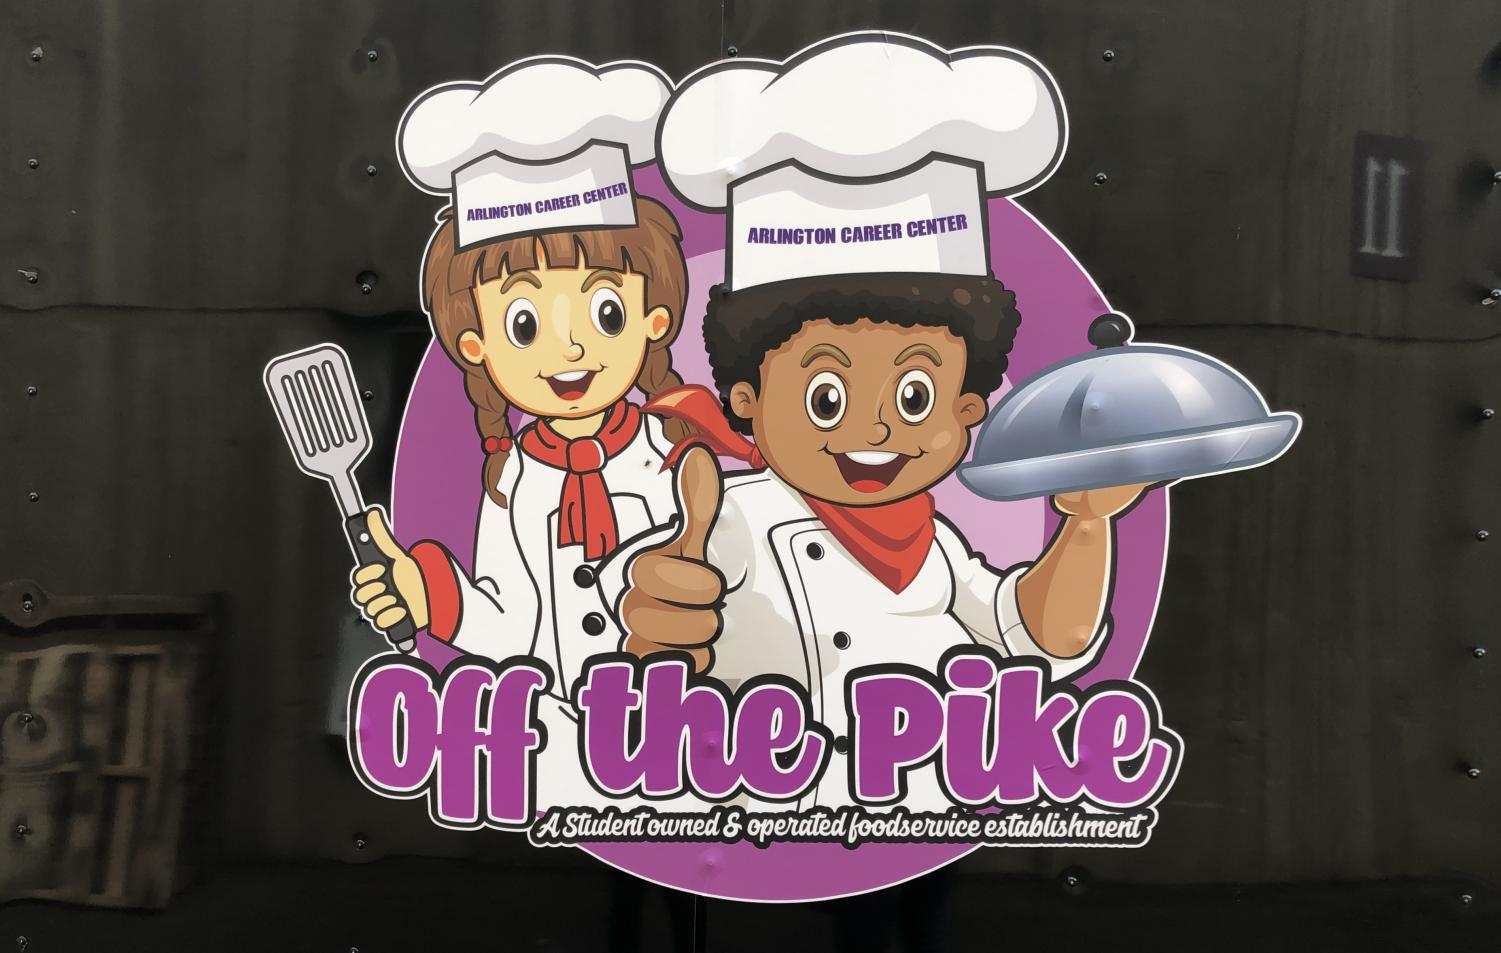 The logo on the cooking class at the Career Centers' personal food truck